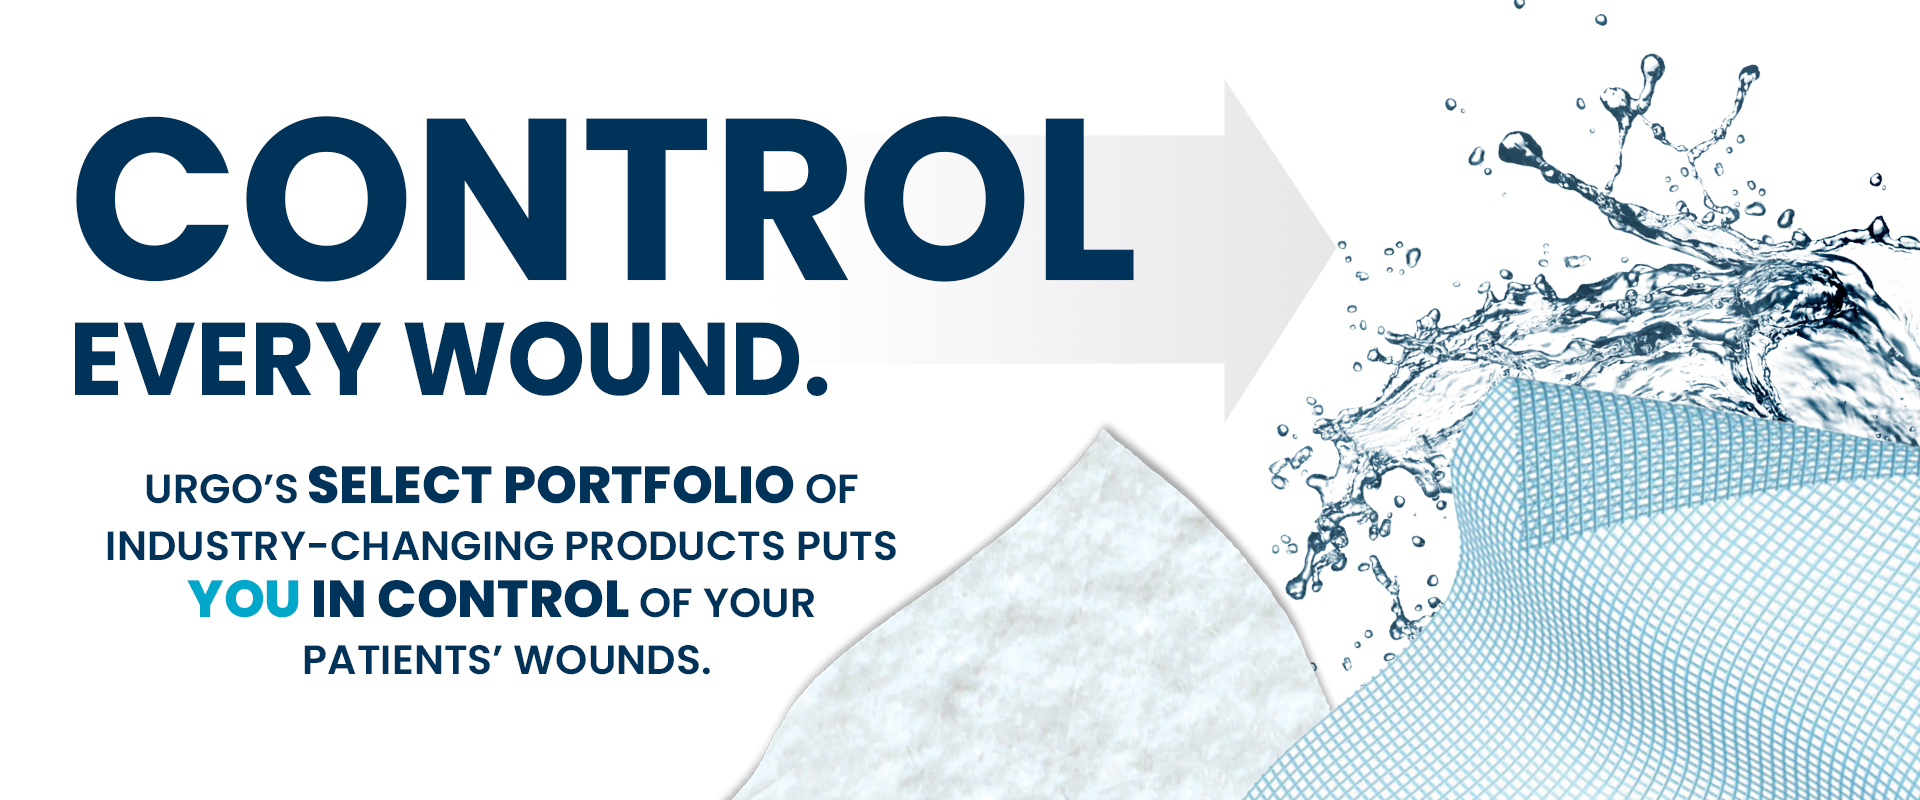 CONTROL EVERY WOUND. URGO'S SELECT PORTFOLIO OF INDUSTRY-CHANGING PRODUCTS PUTS YOU IN CONTROL OF YOUR PATIENTS' WOUNDS.